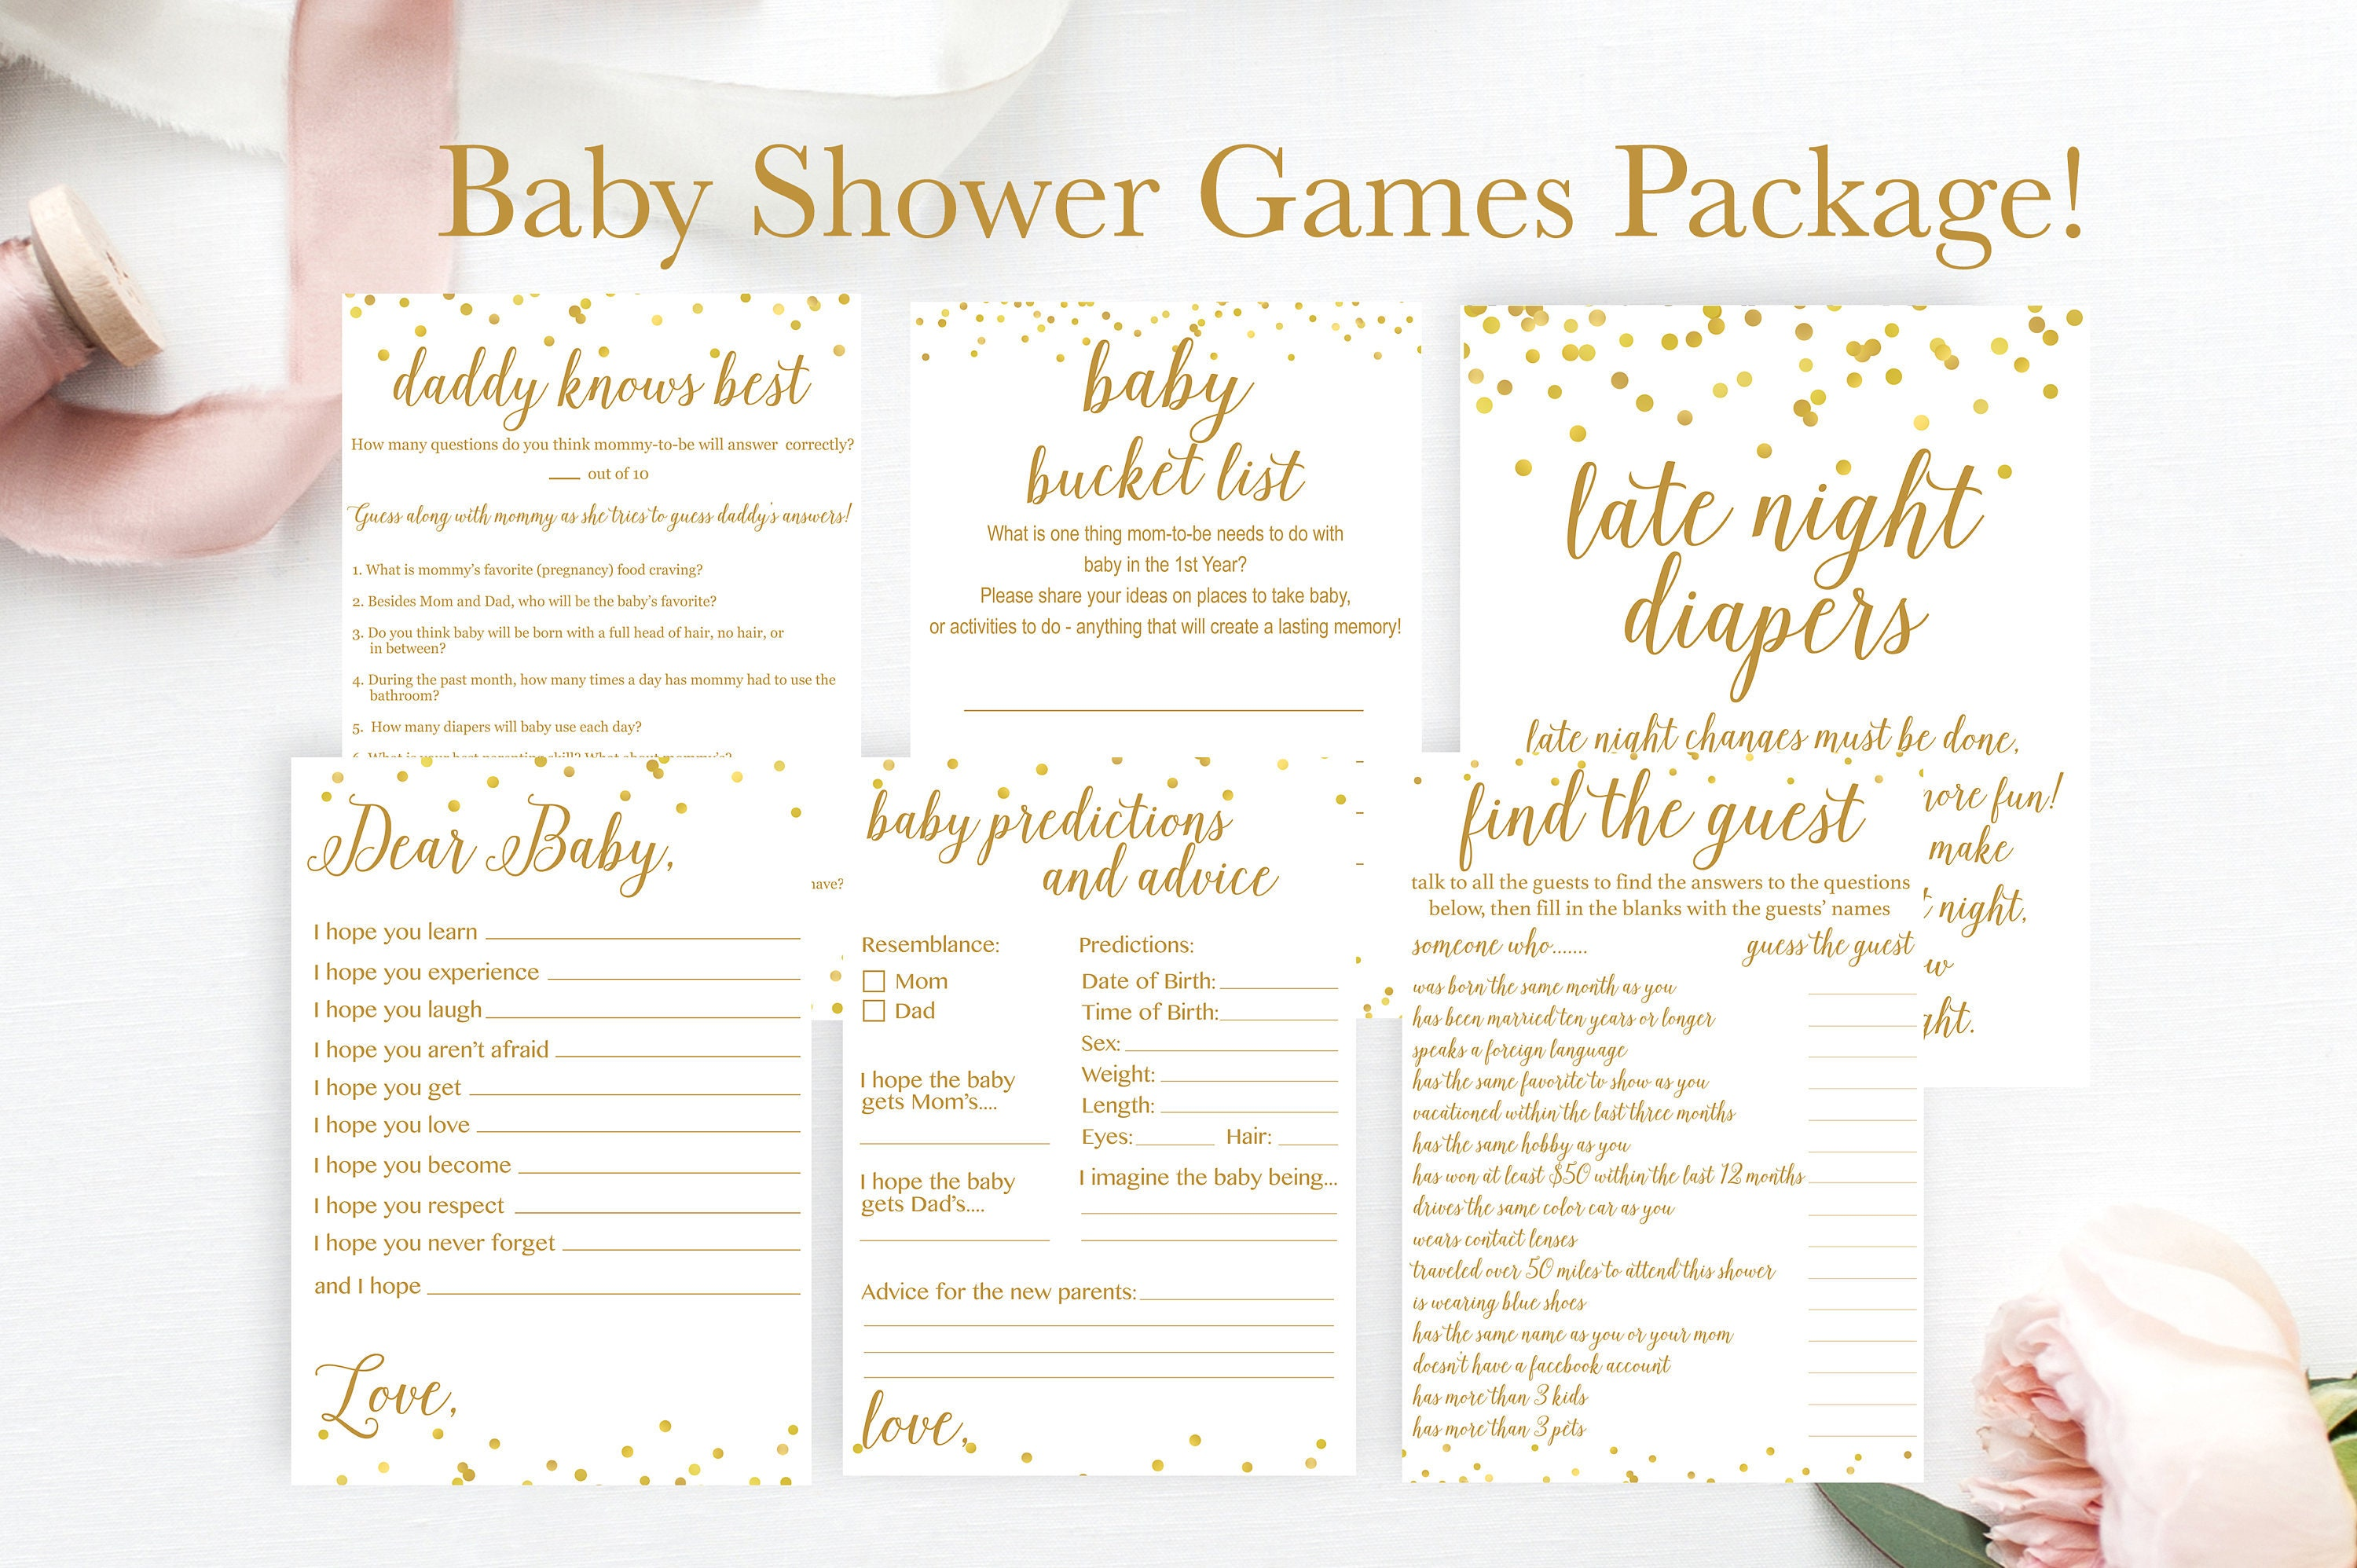 Imgenes De Things To Do At A Baby Shower Besides Games